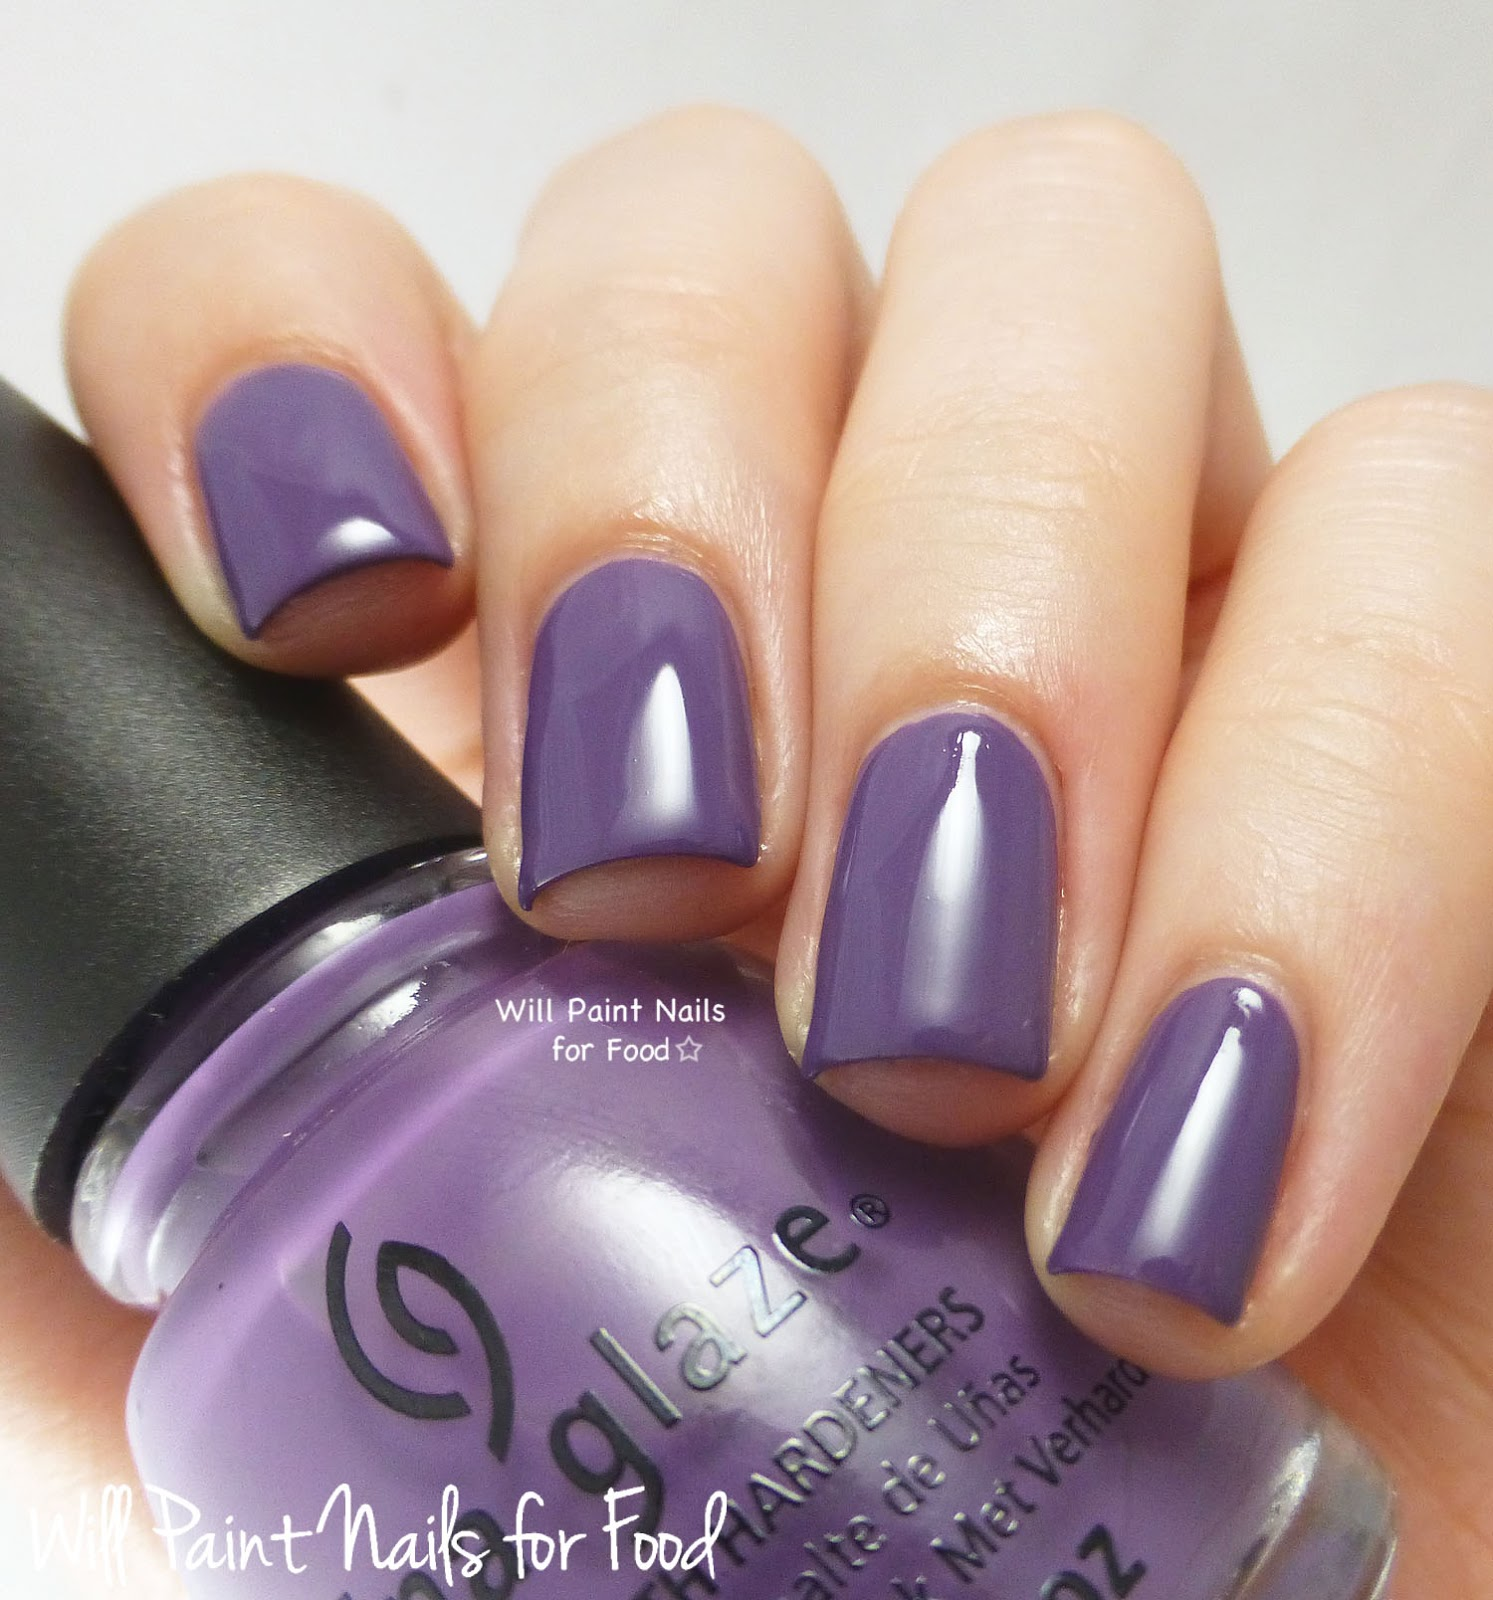 China Glaze All Aboard swatch